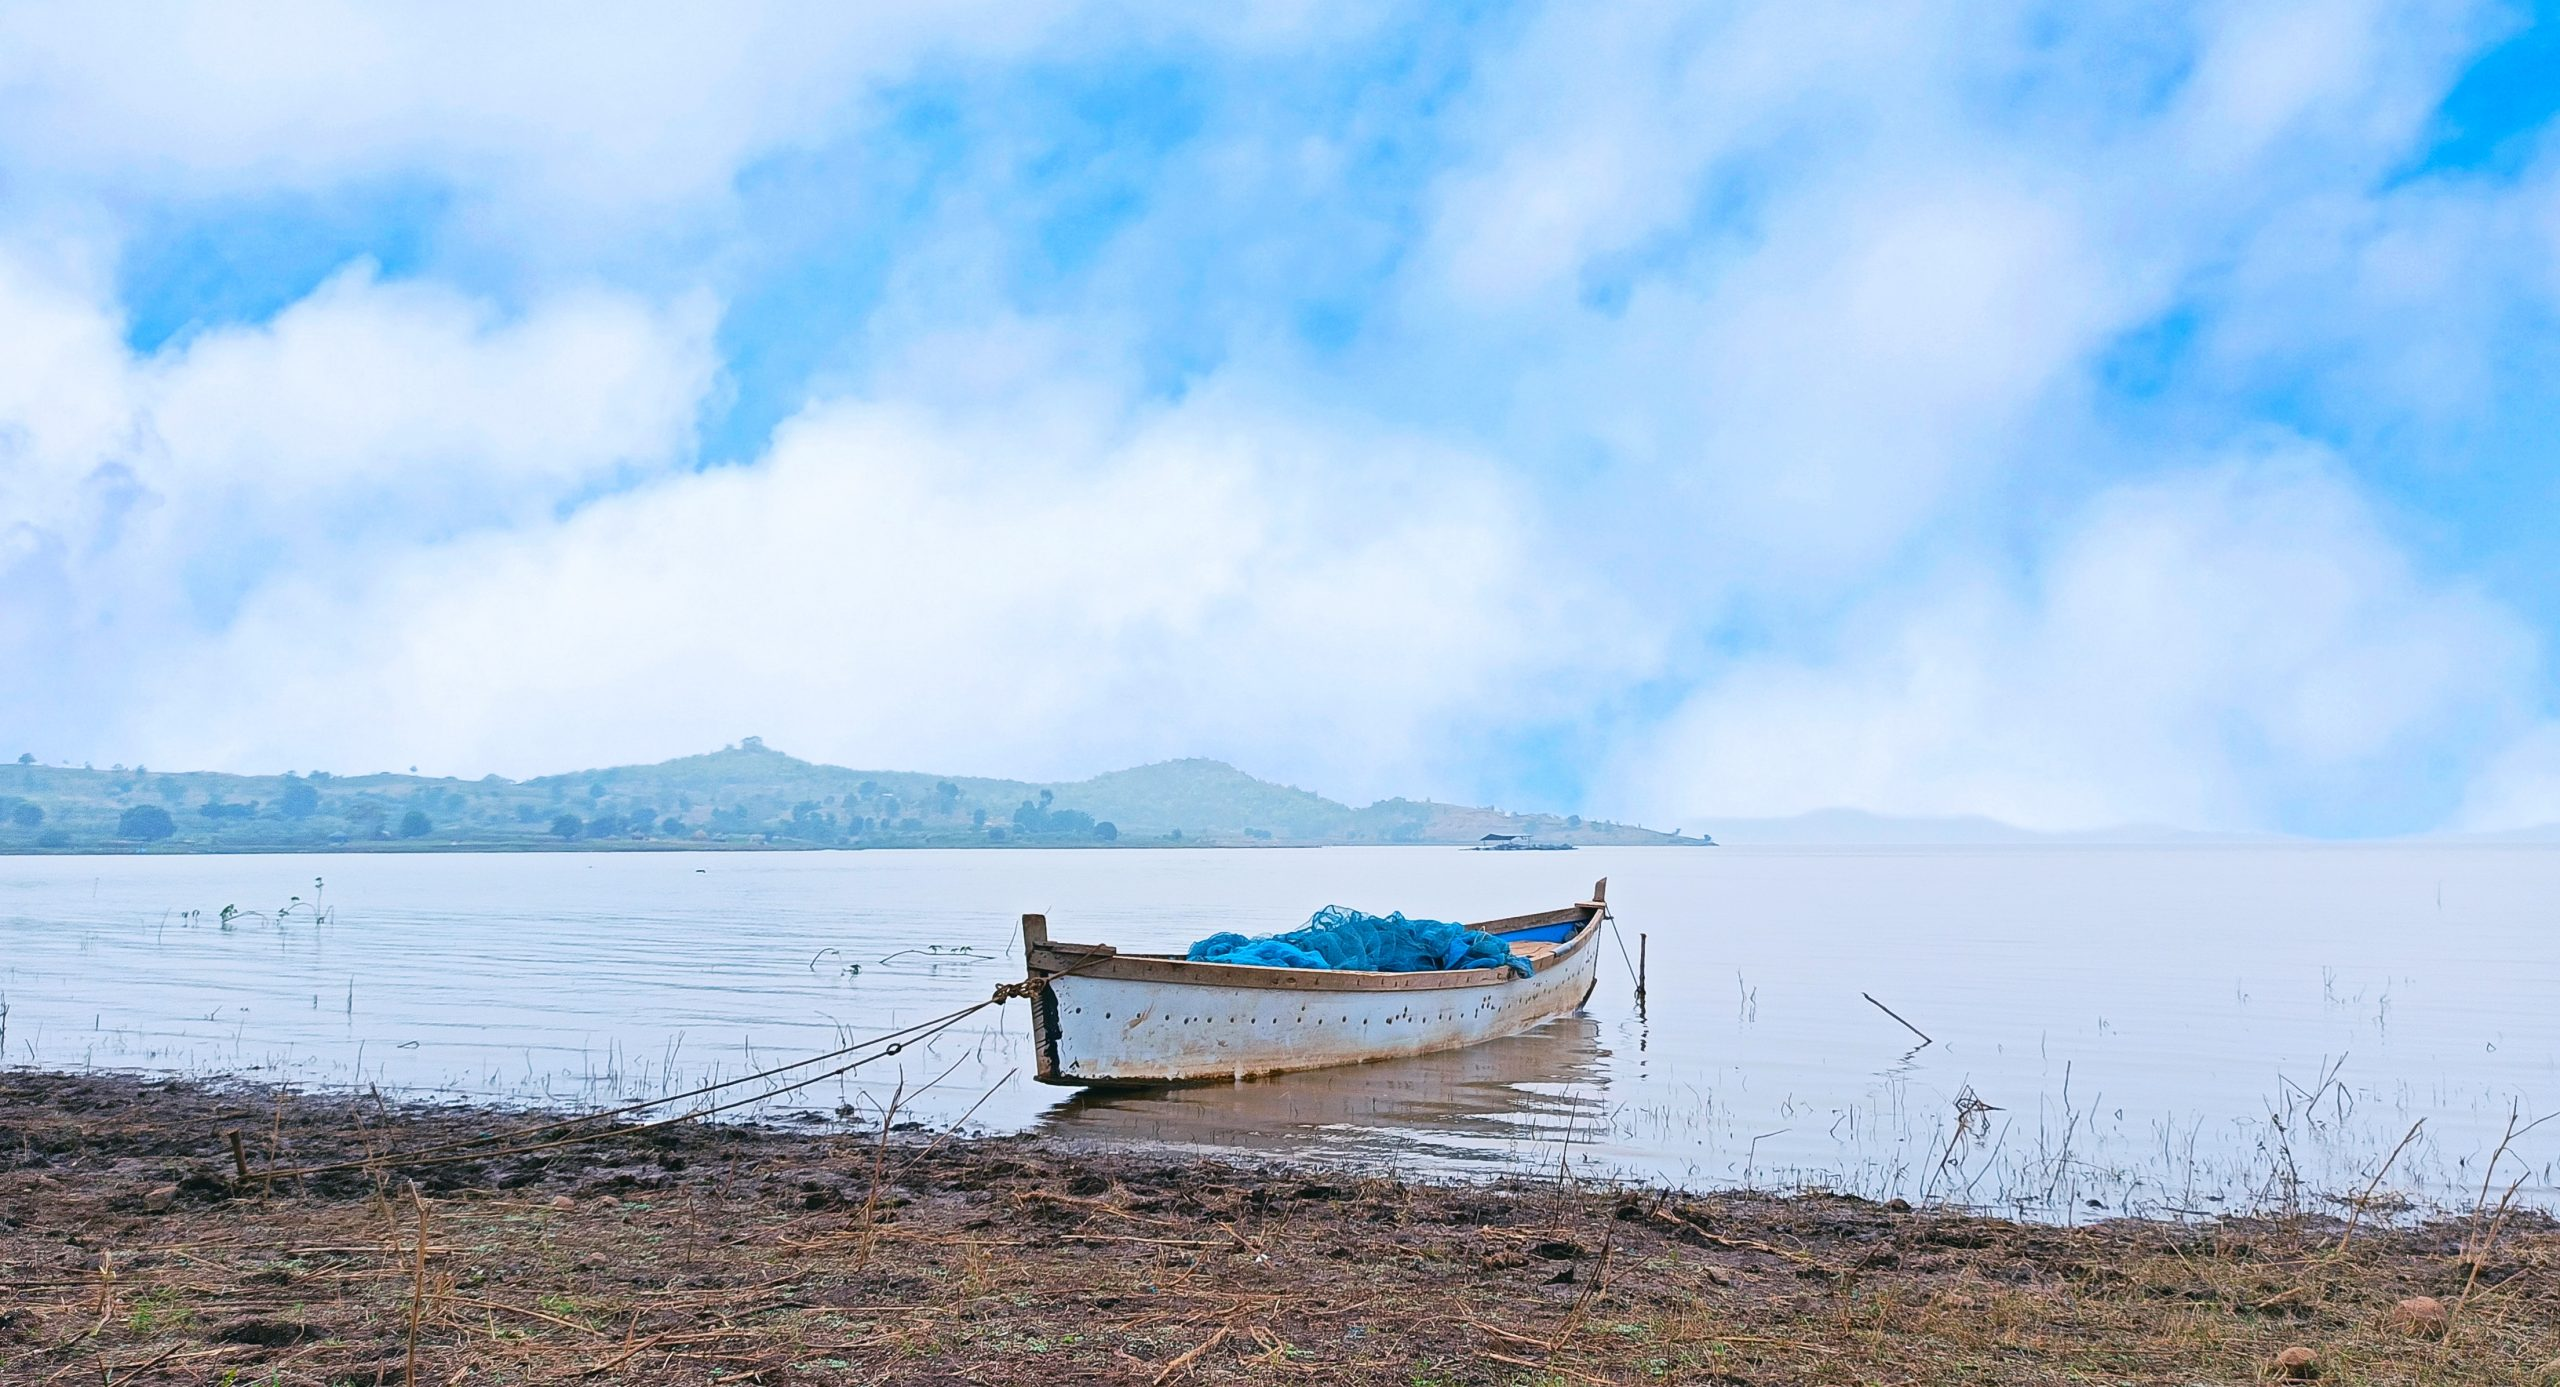 A wooden boat tied to shore